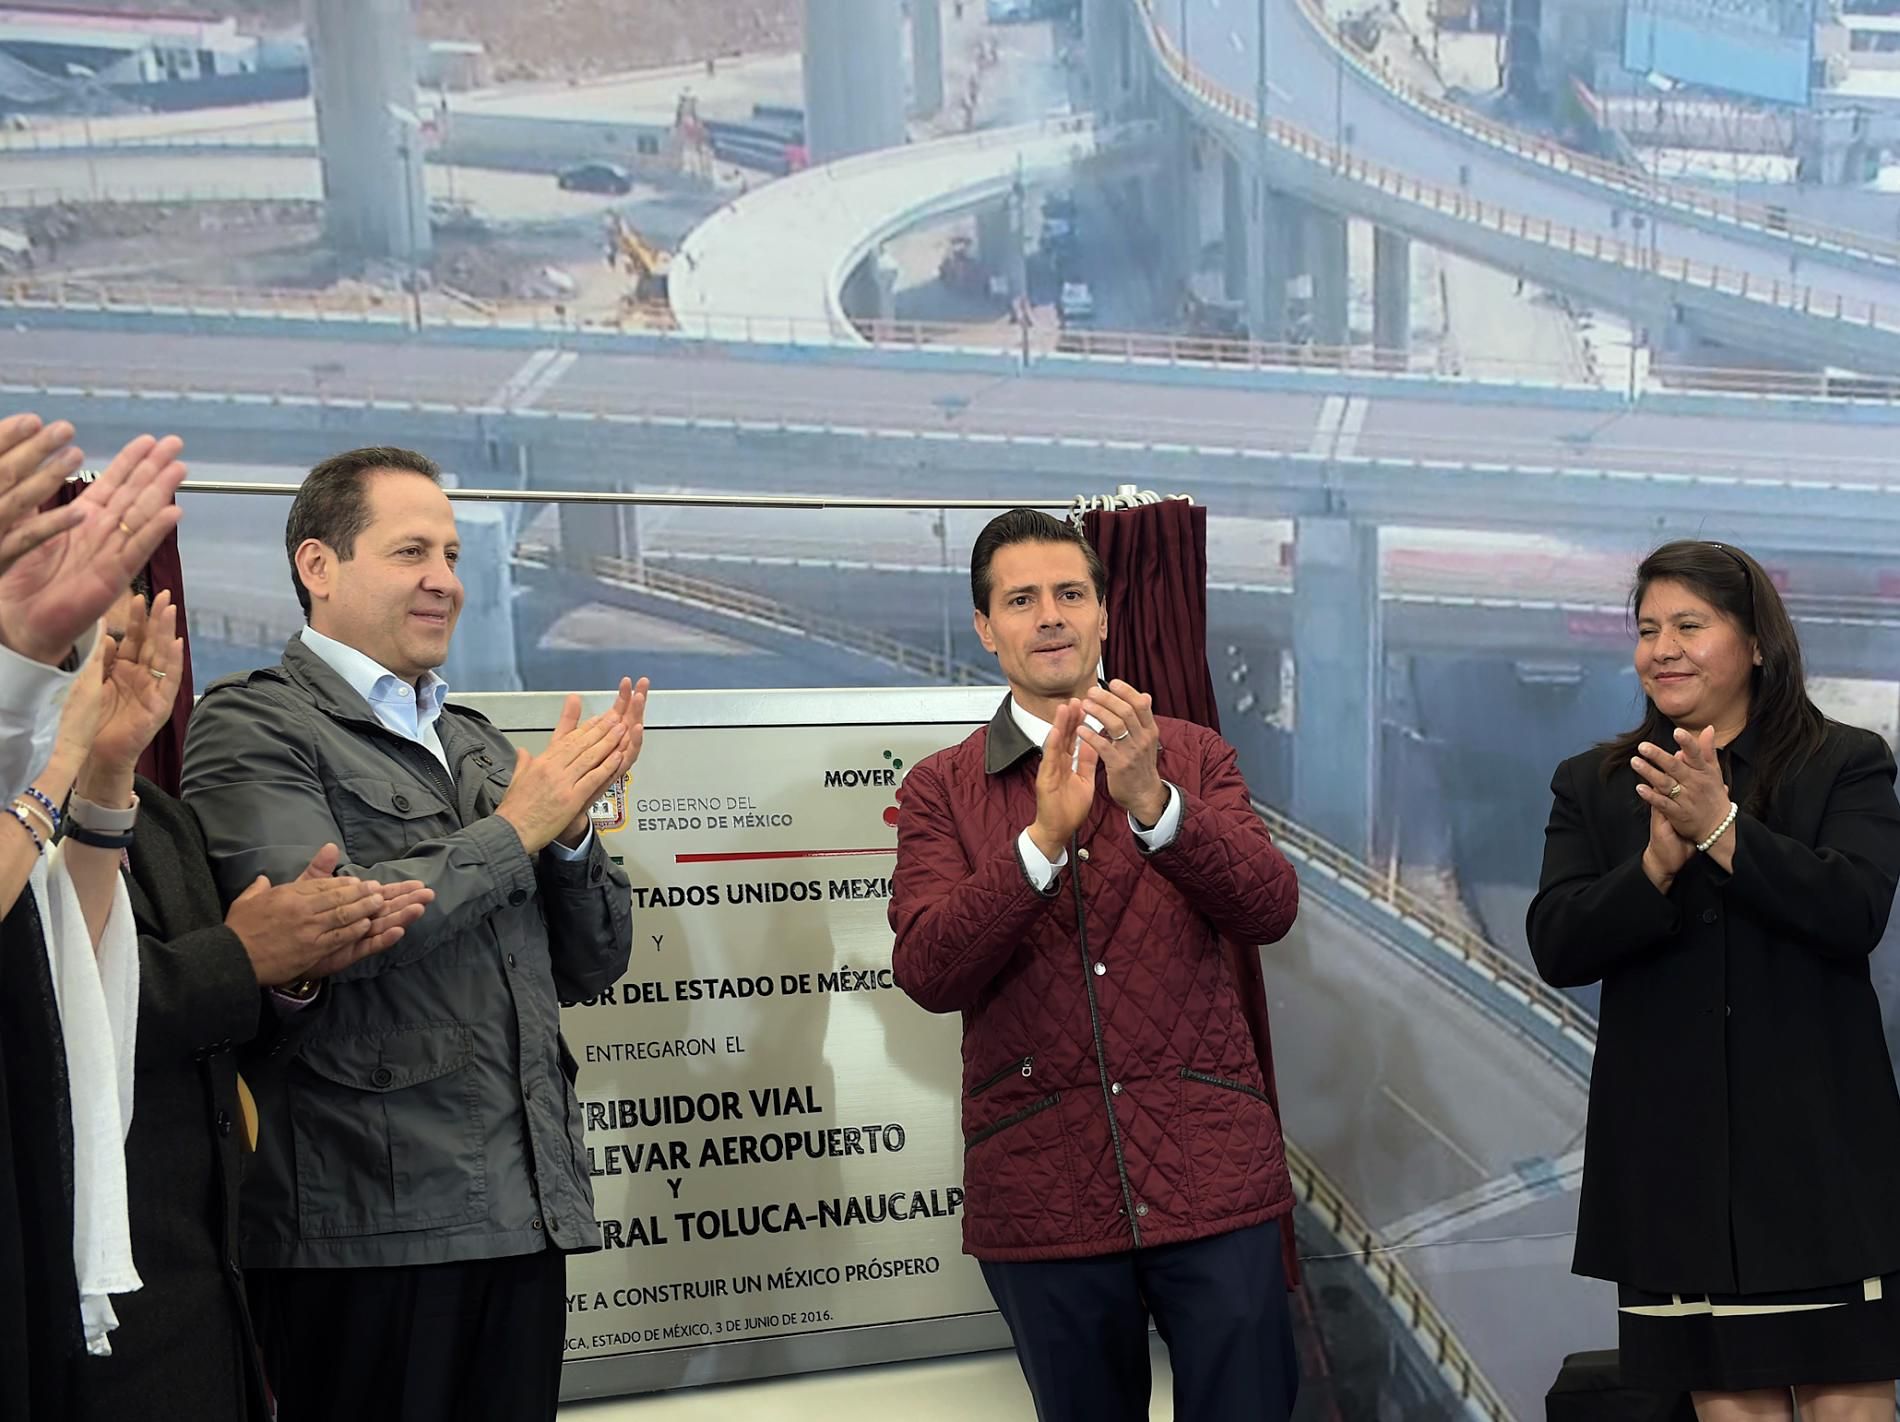 The goal set for this administration is to build 52 new highways, with a length of over 3,000 kilometers, he said.